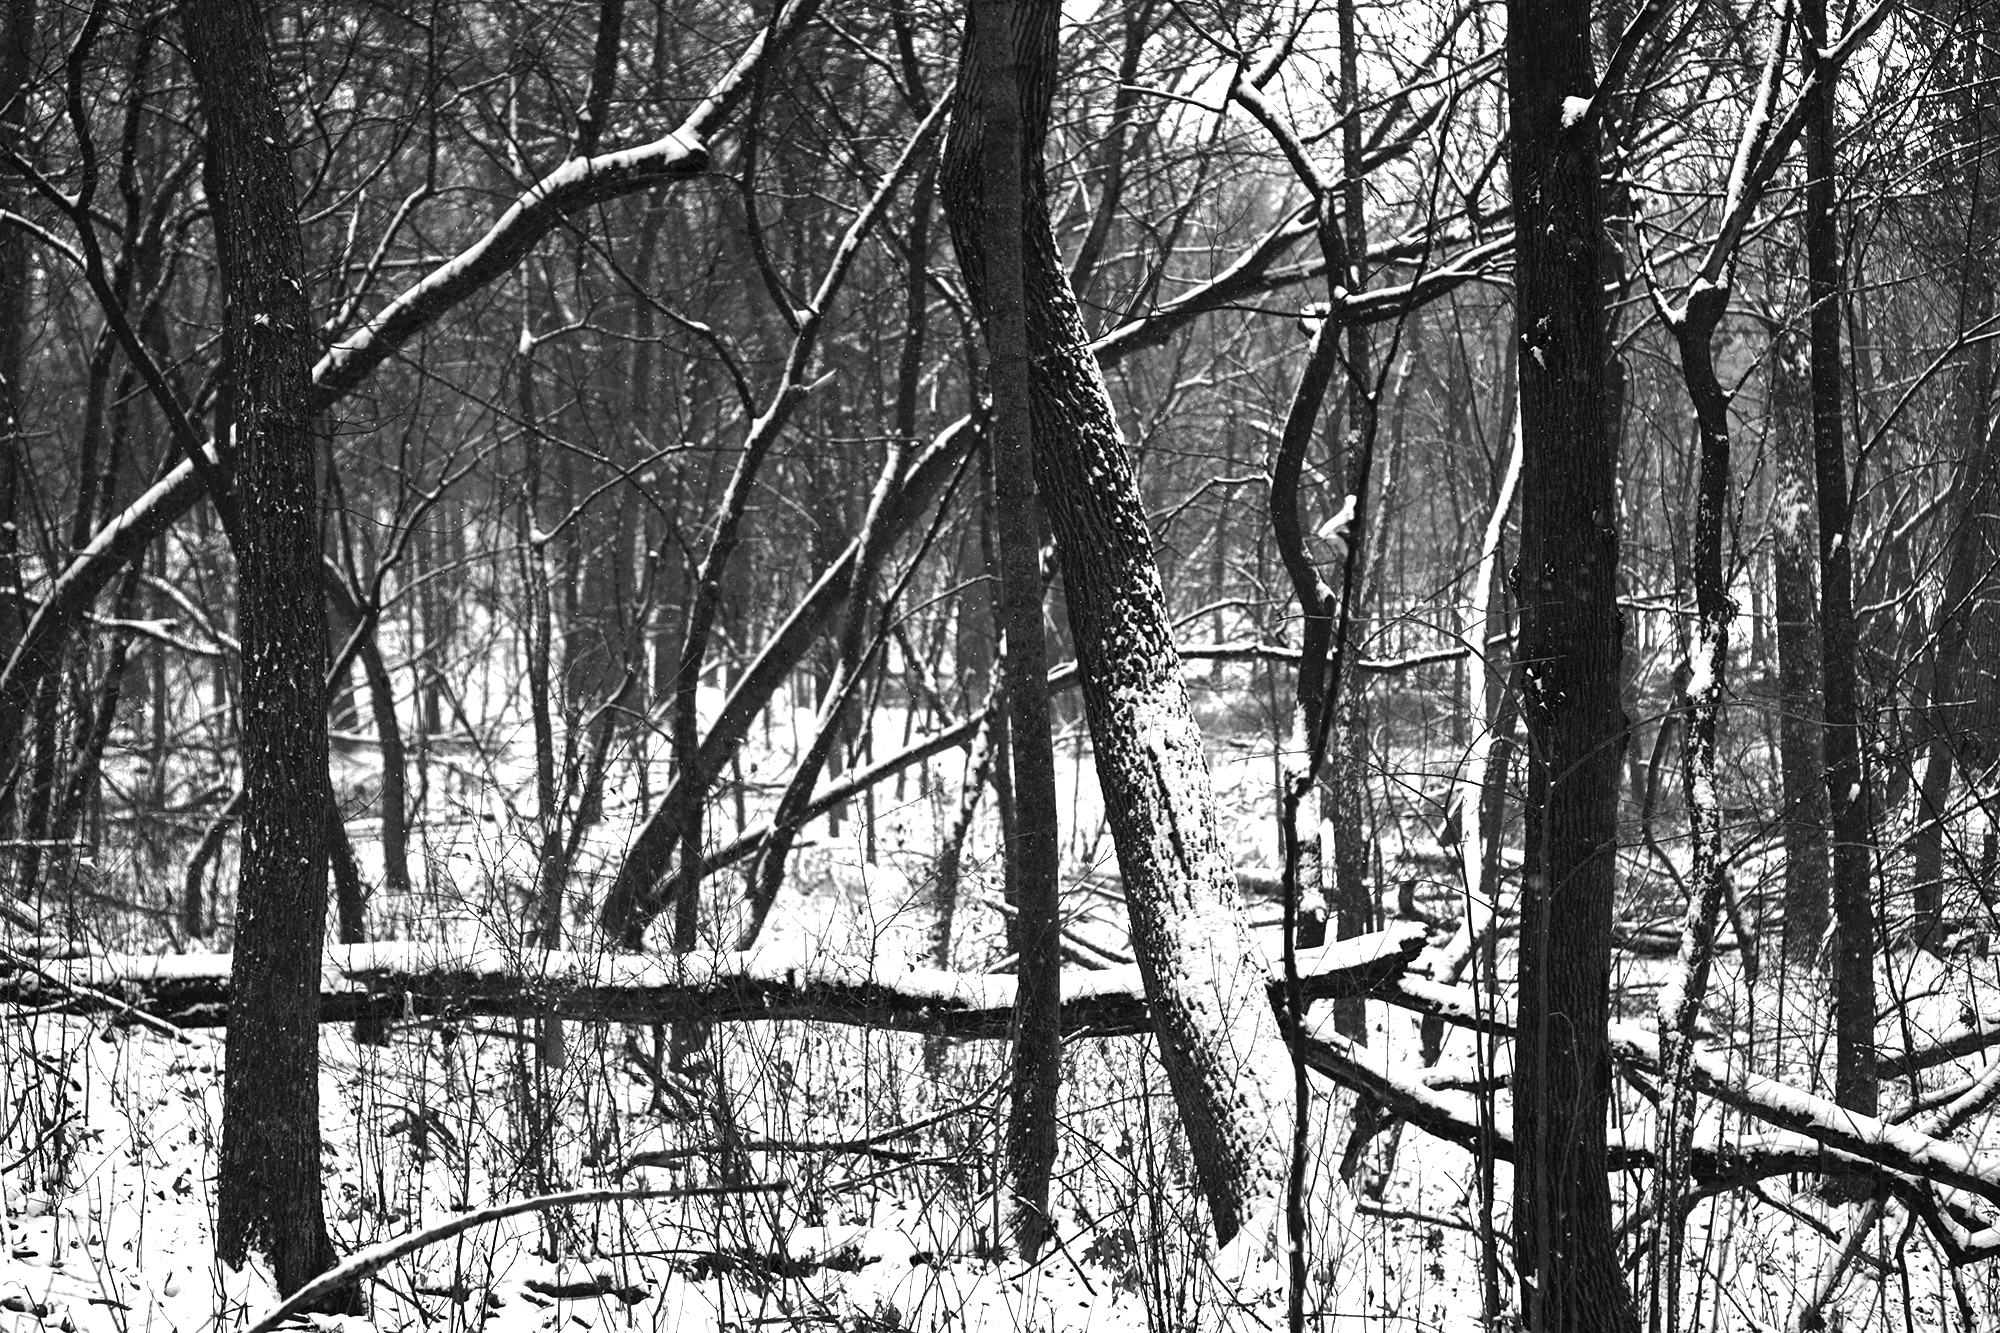 Darker than green nature writing all hardy pioneers who must have walked these paths just before us curving the trails slowly in wonder sciox Images